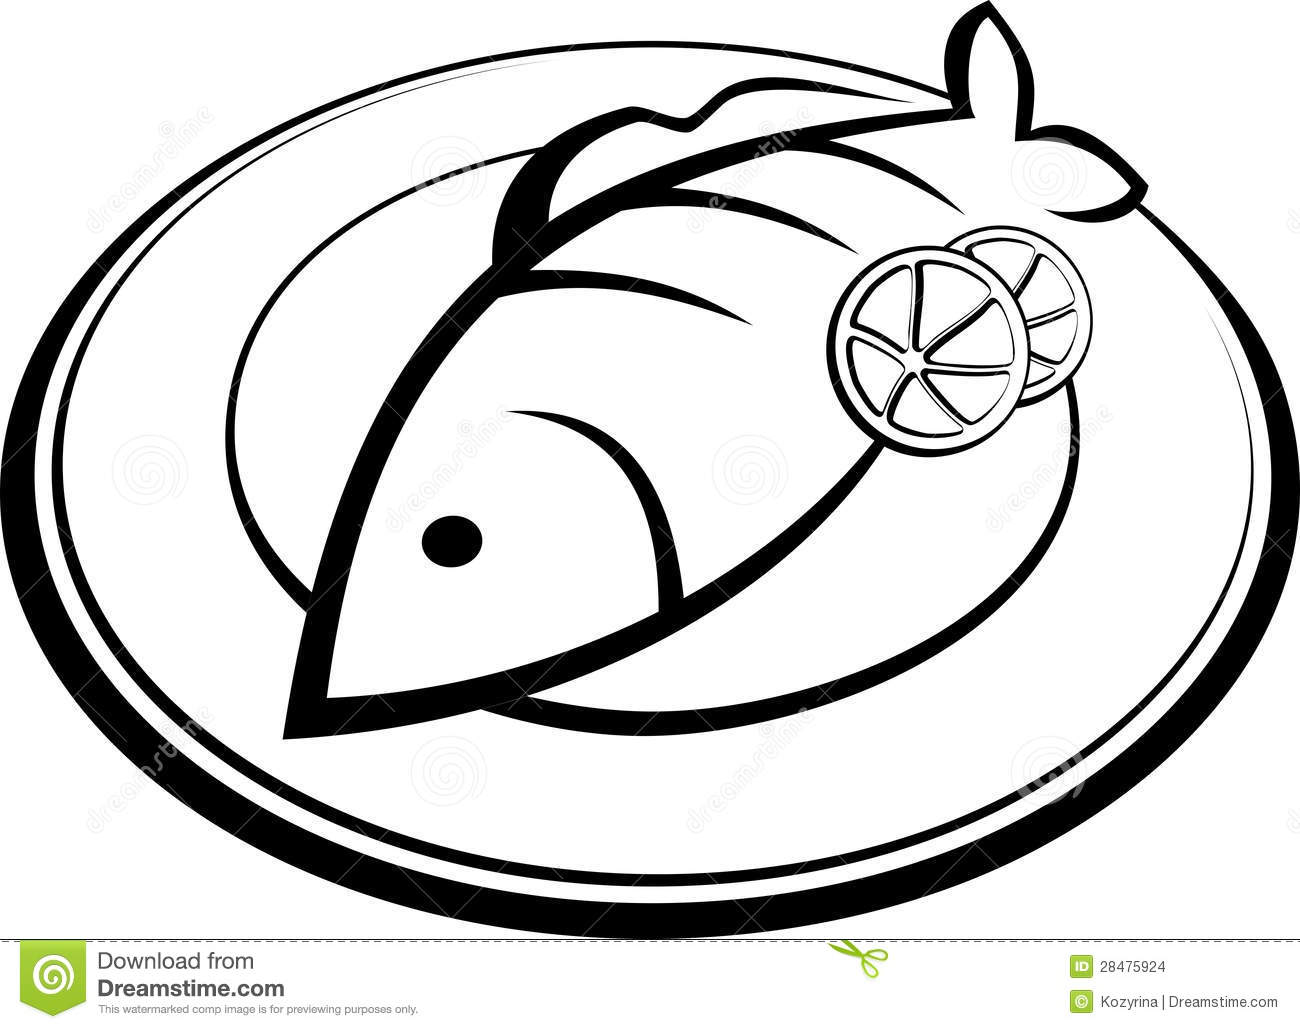 Fish on a plate stock vector. Image of vector, symbol